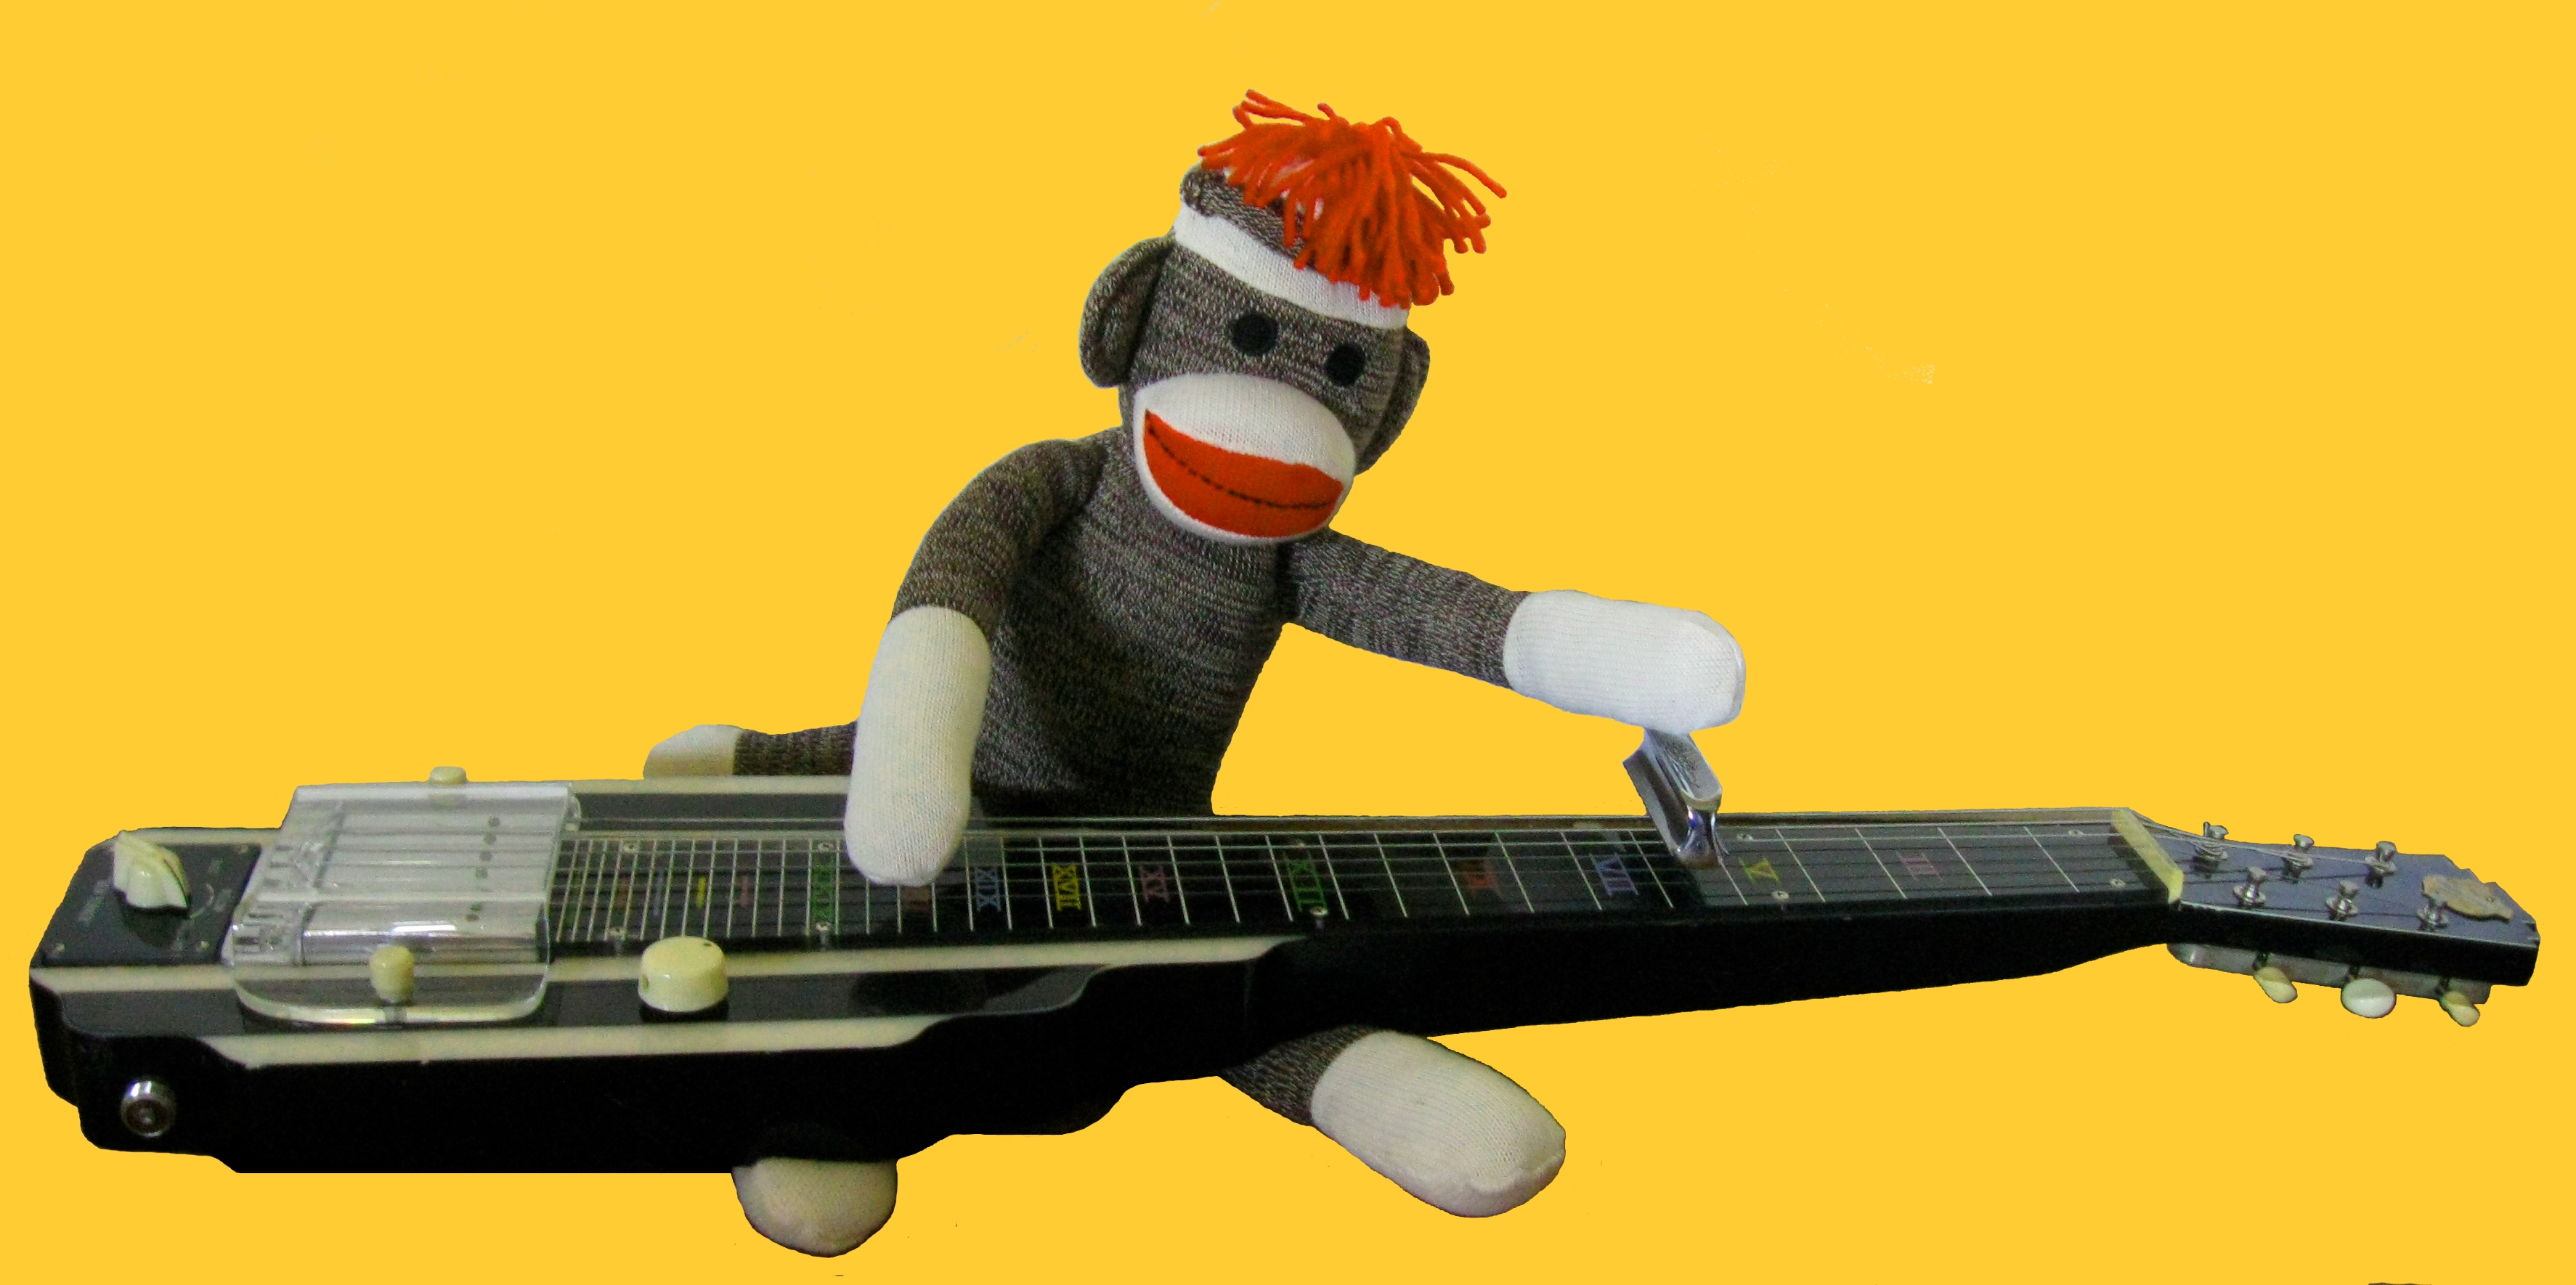 The Strumming Monkey